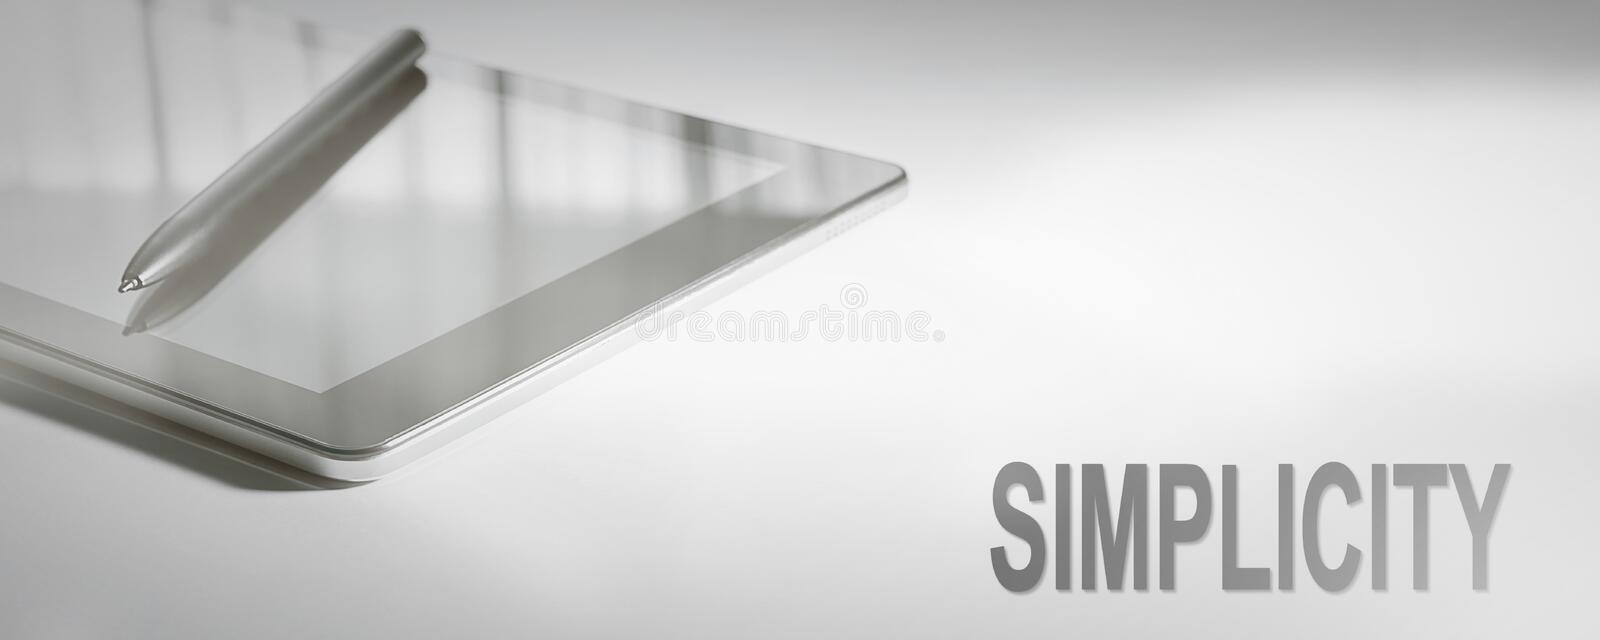 SIMPLICITY Business Concept Digital Technology. Graphic Concept stock image